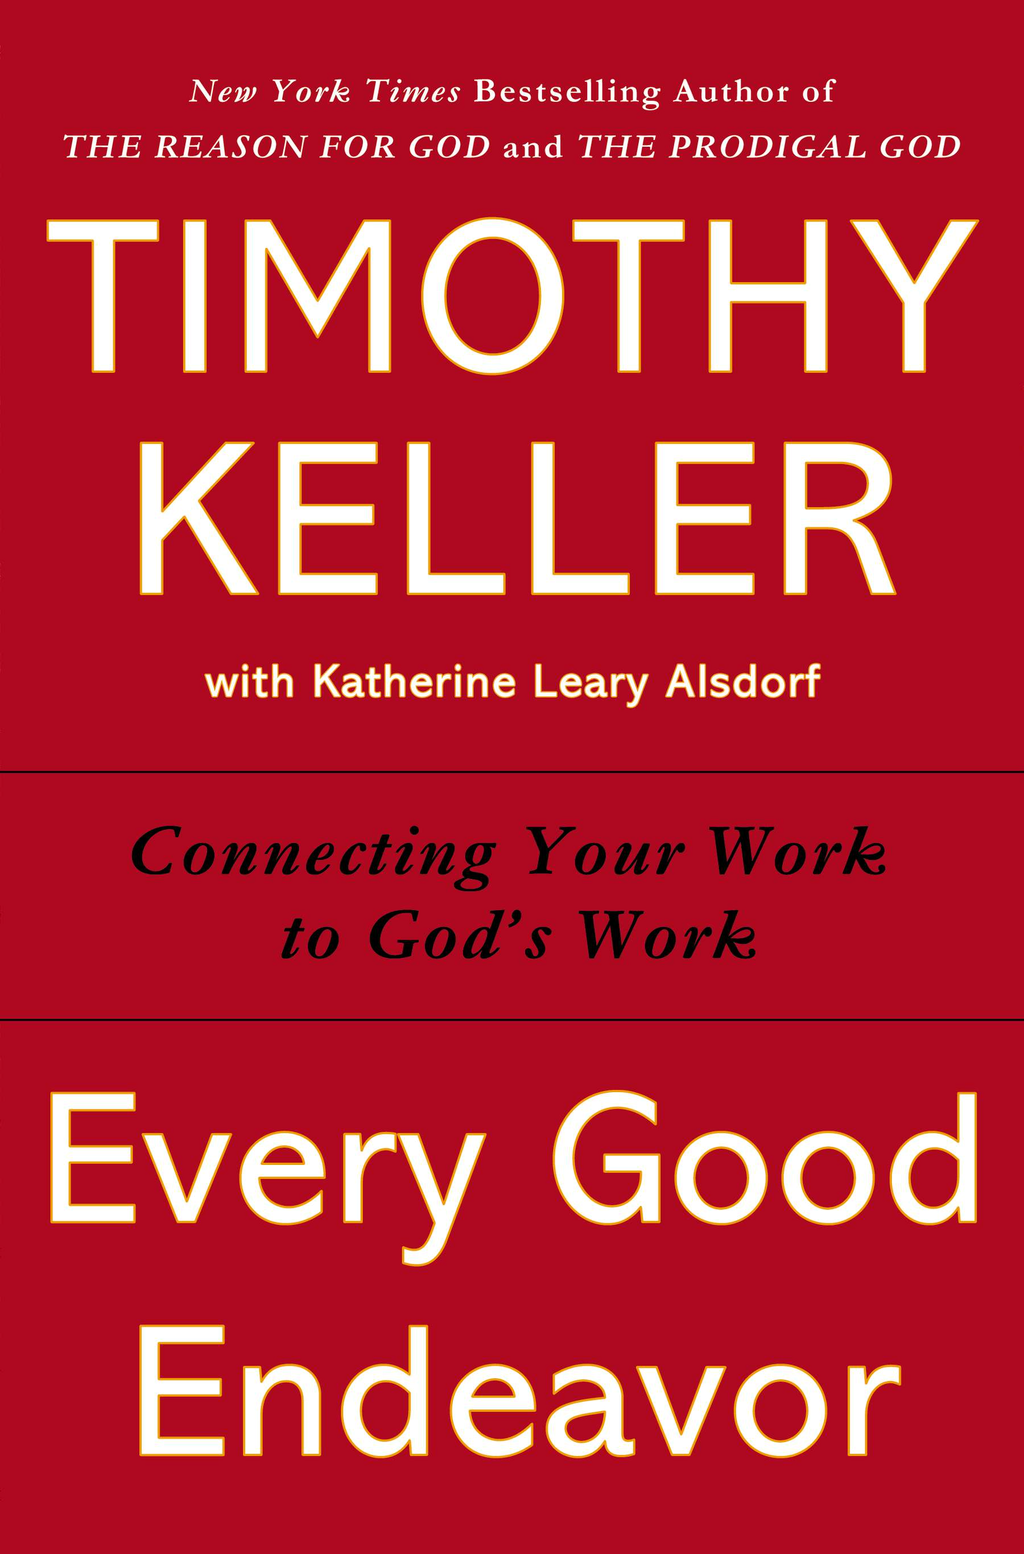 Every Good Endeavor By: Timothy Keller